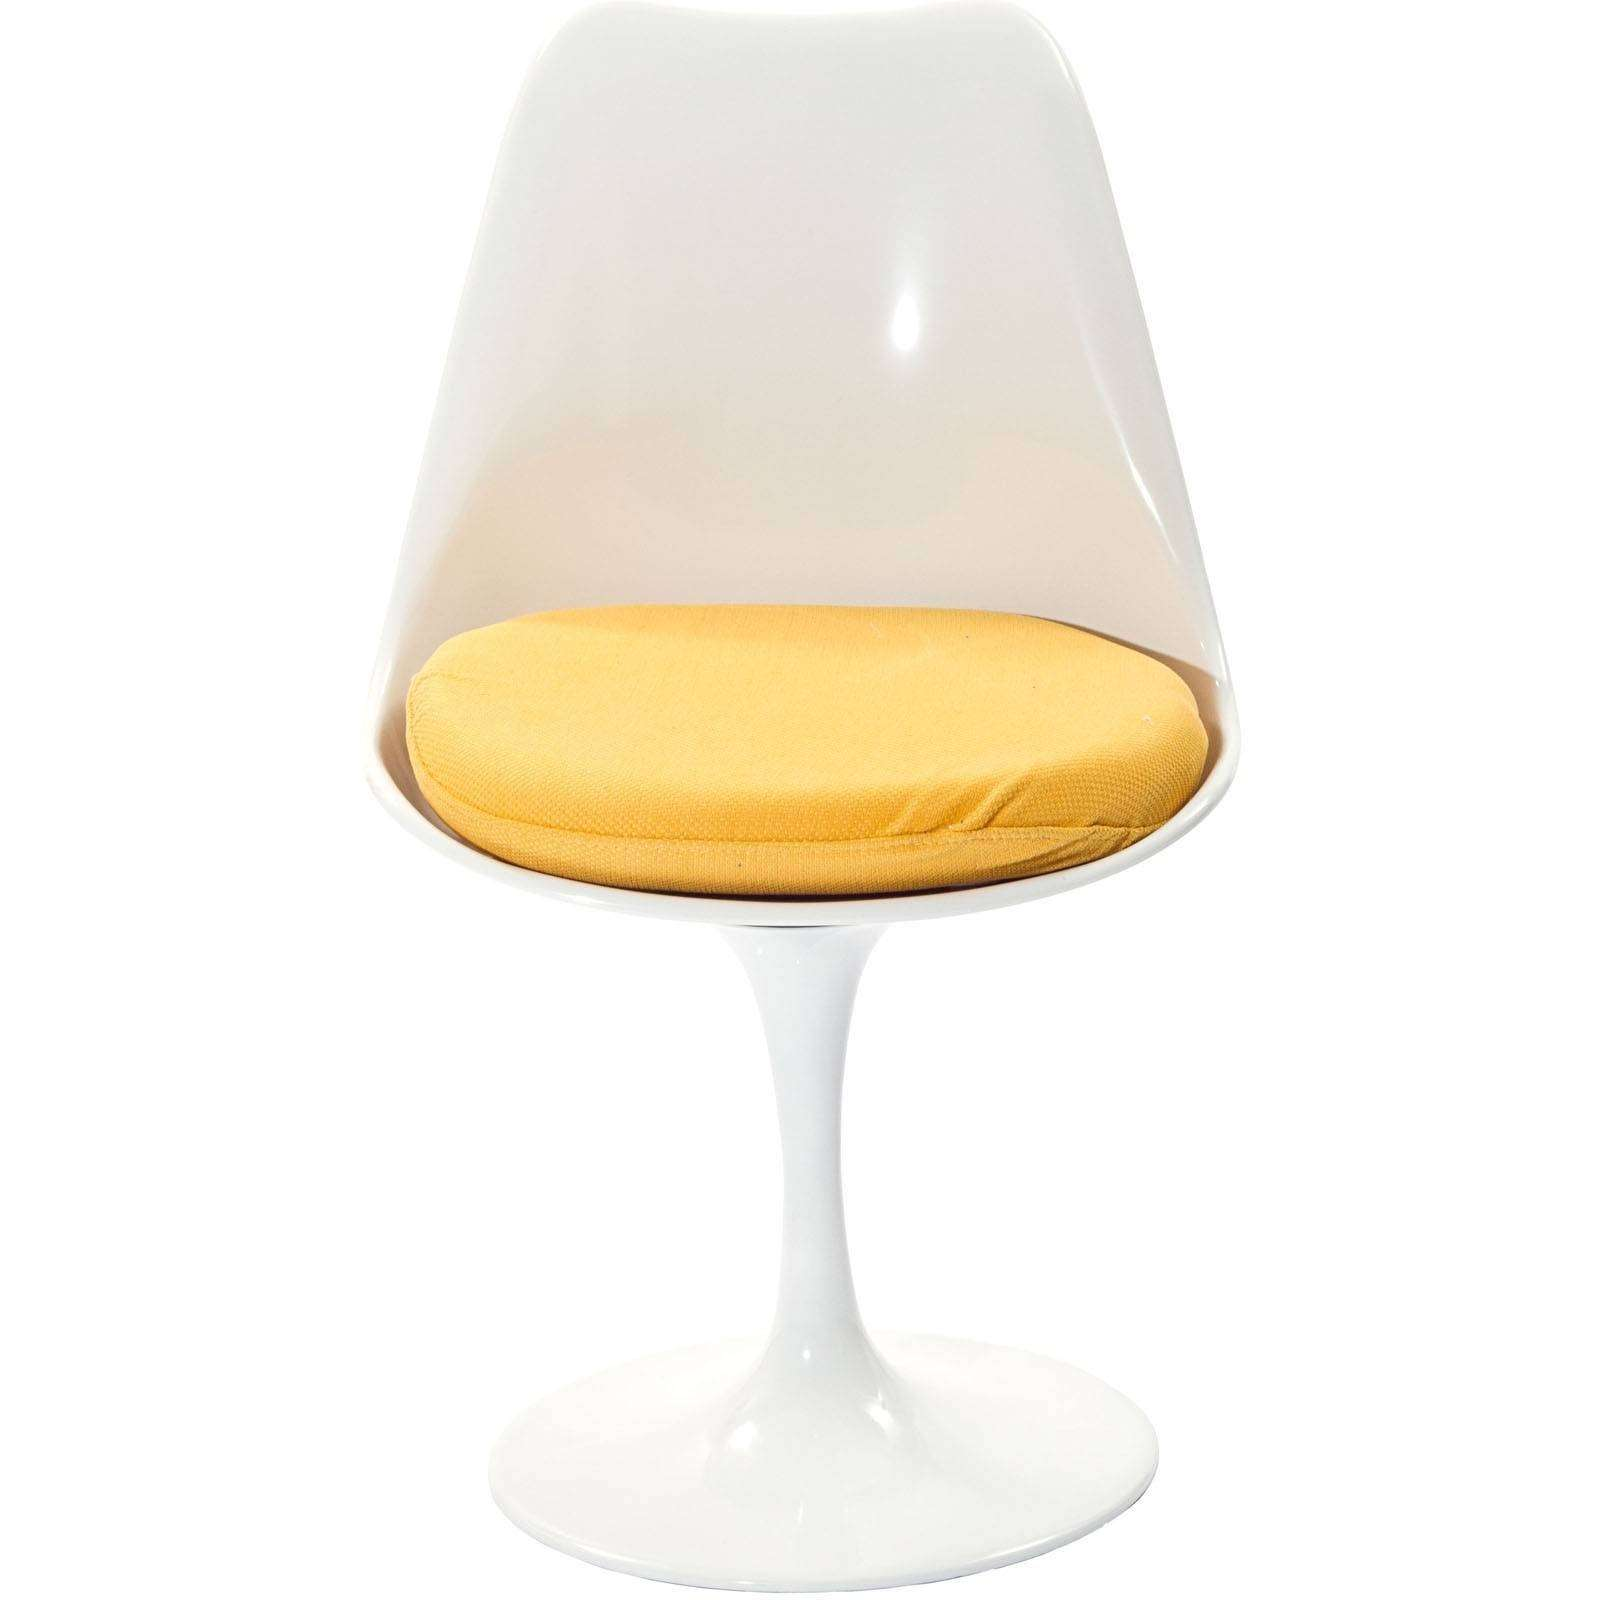 white bertoia side chair beach with wheels and canopy eero saarinen style tulip